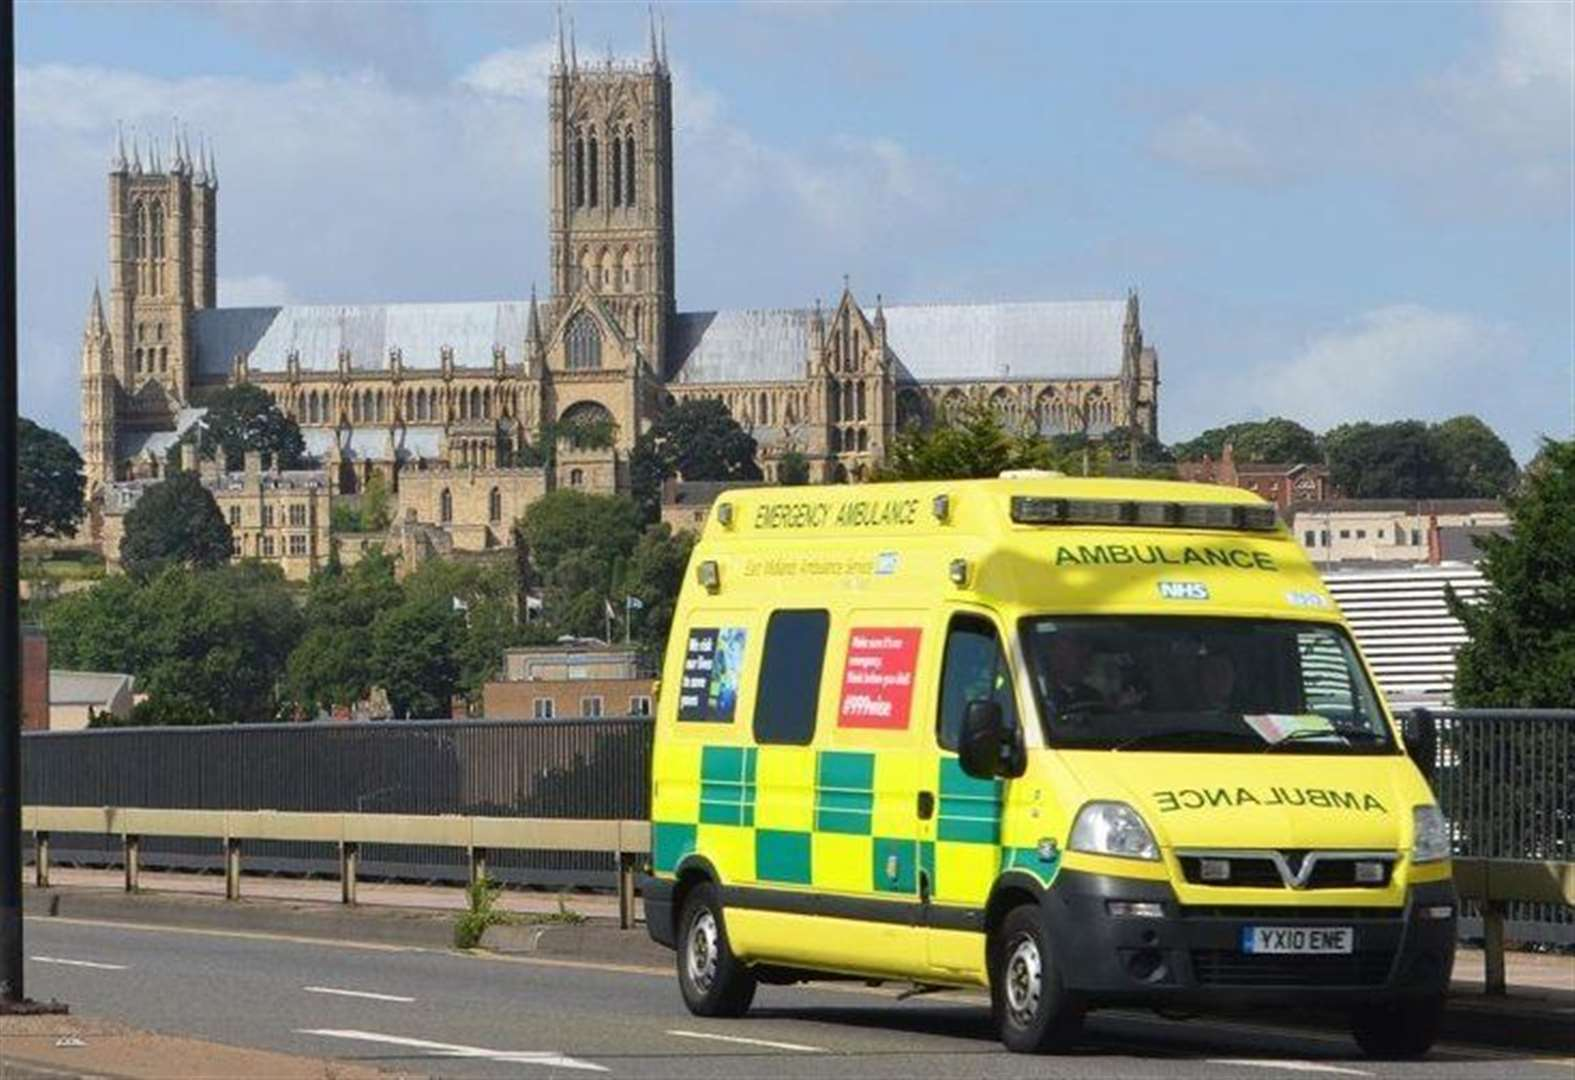 'More work to do' at ambulance service